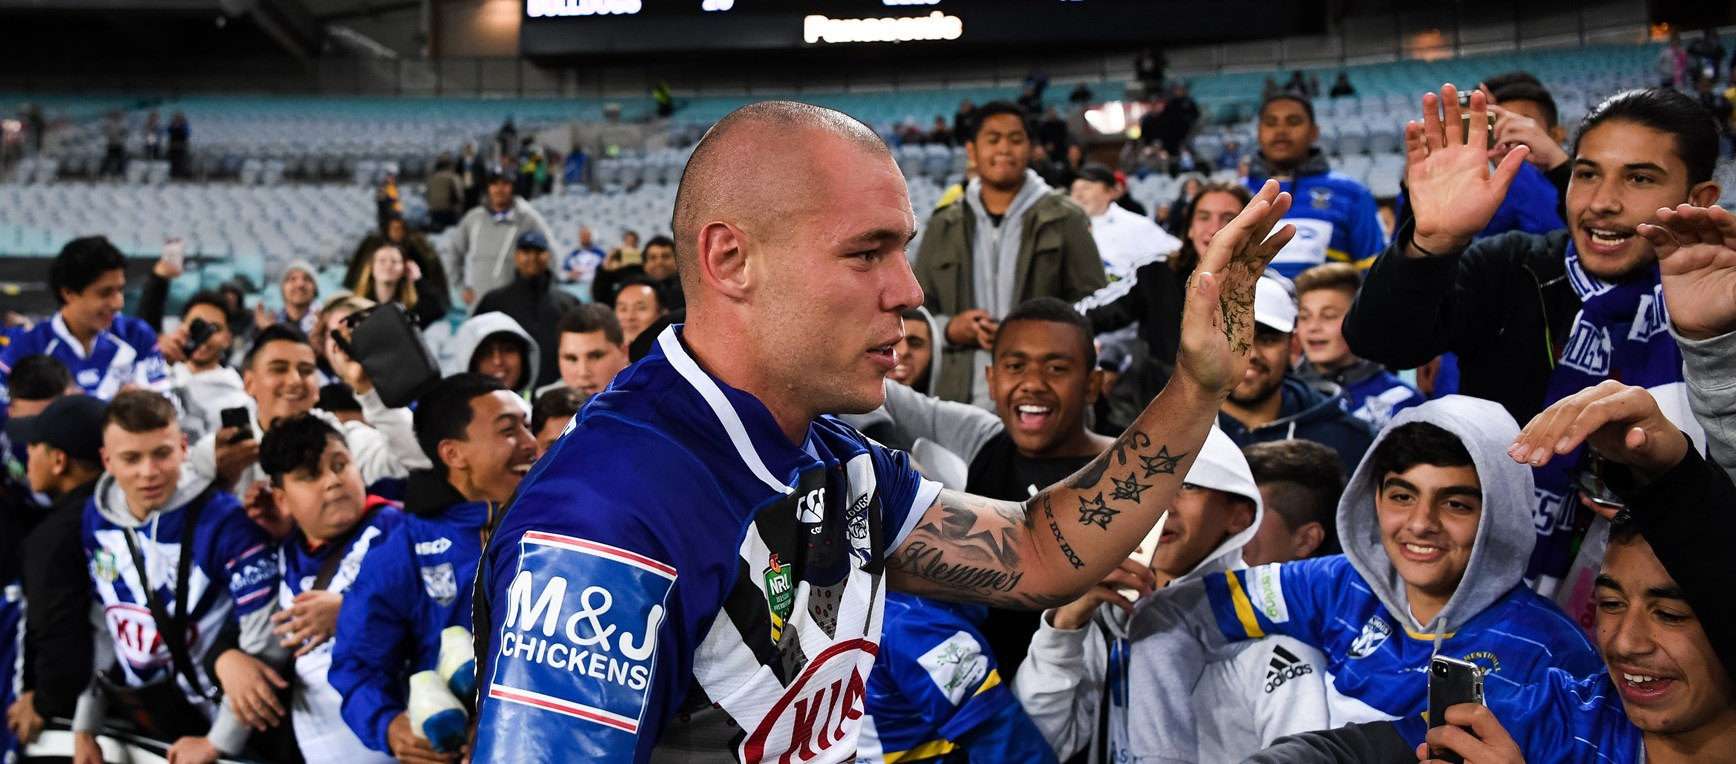 Player Images: David Klemmer